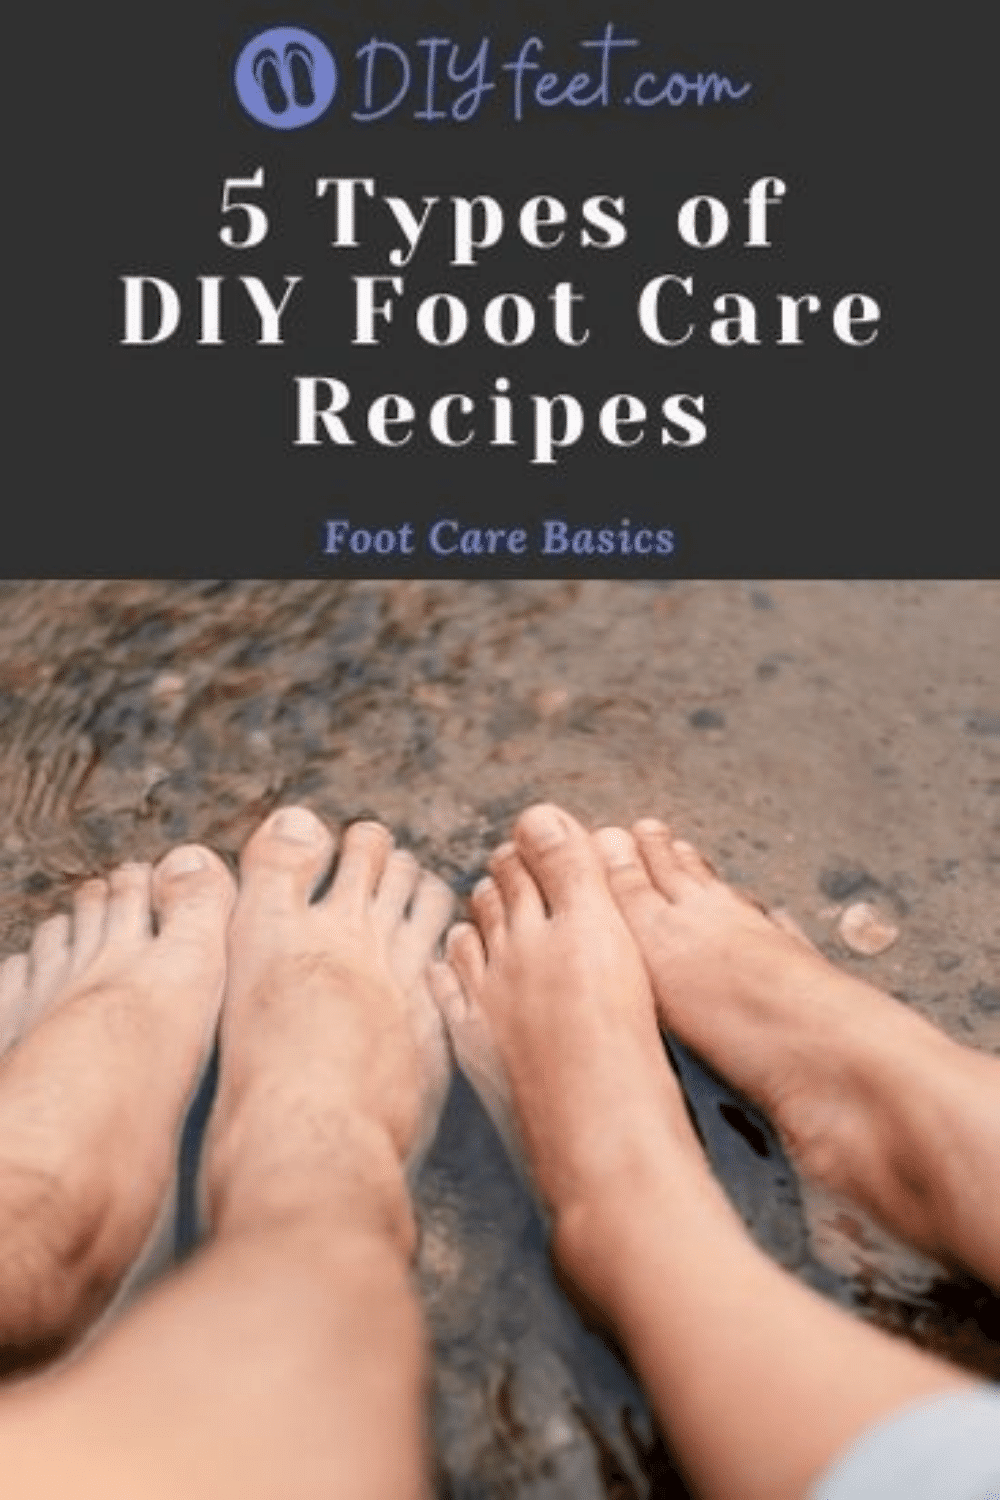 Types of DIY Foot Care Recipes